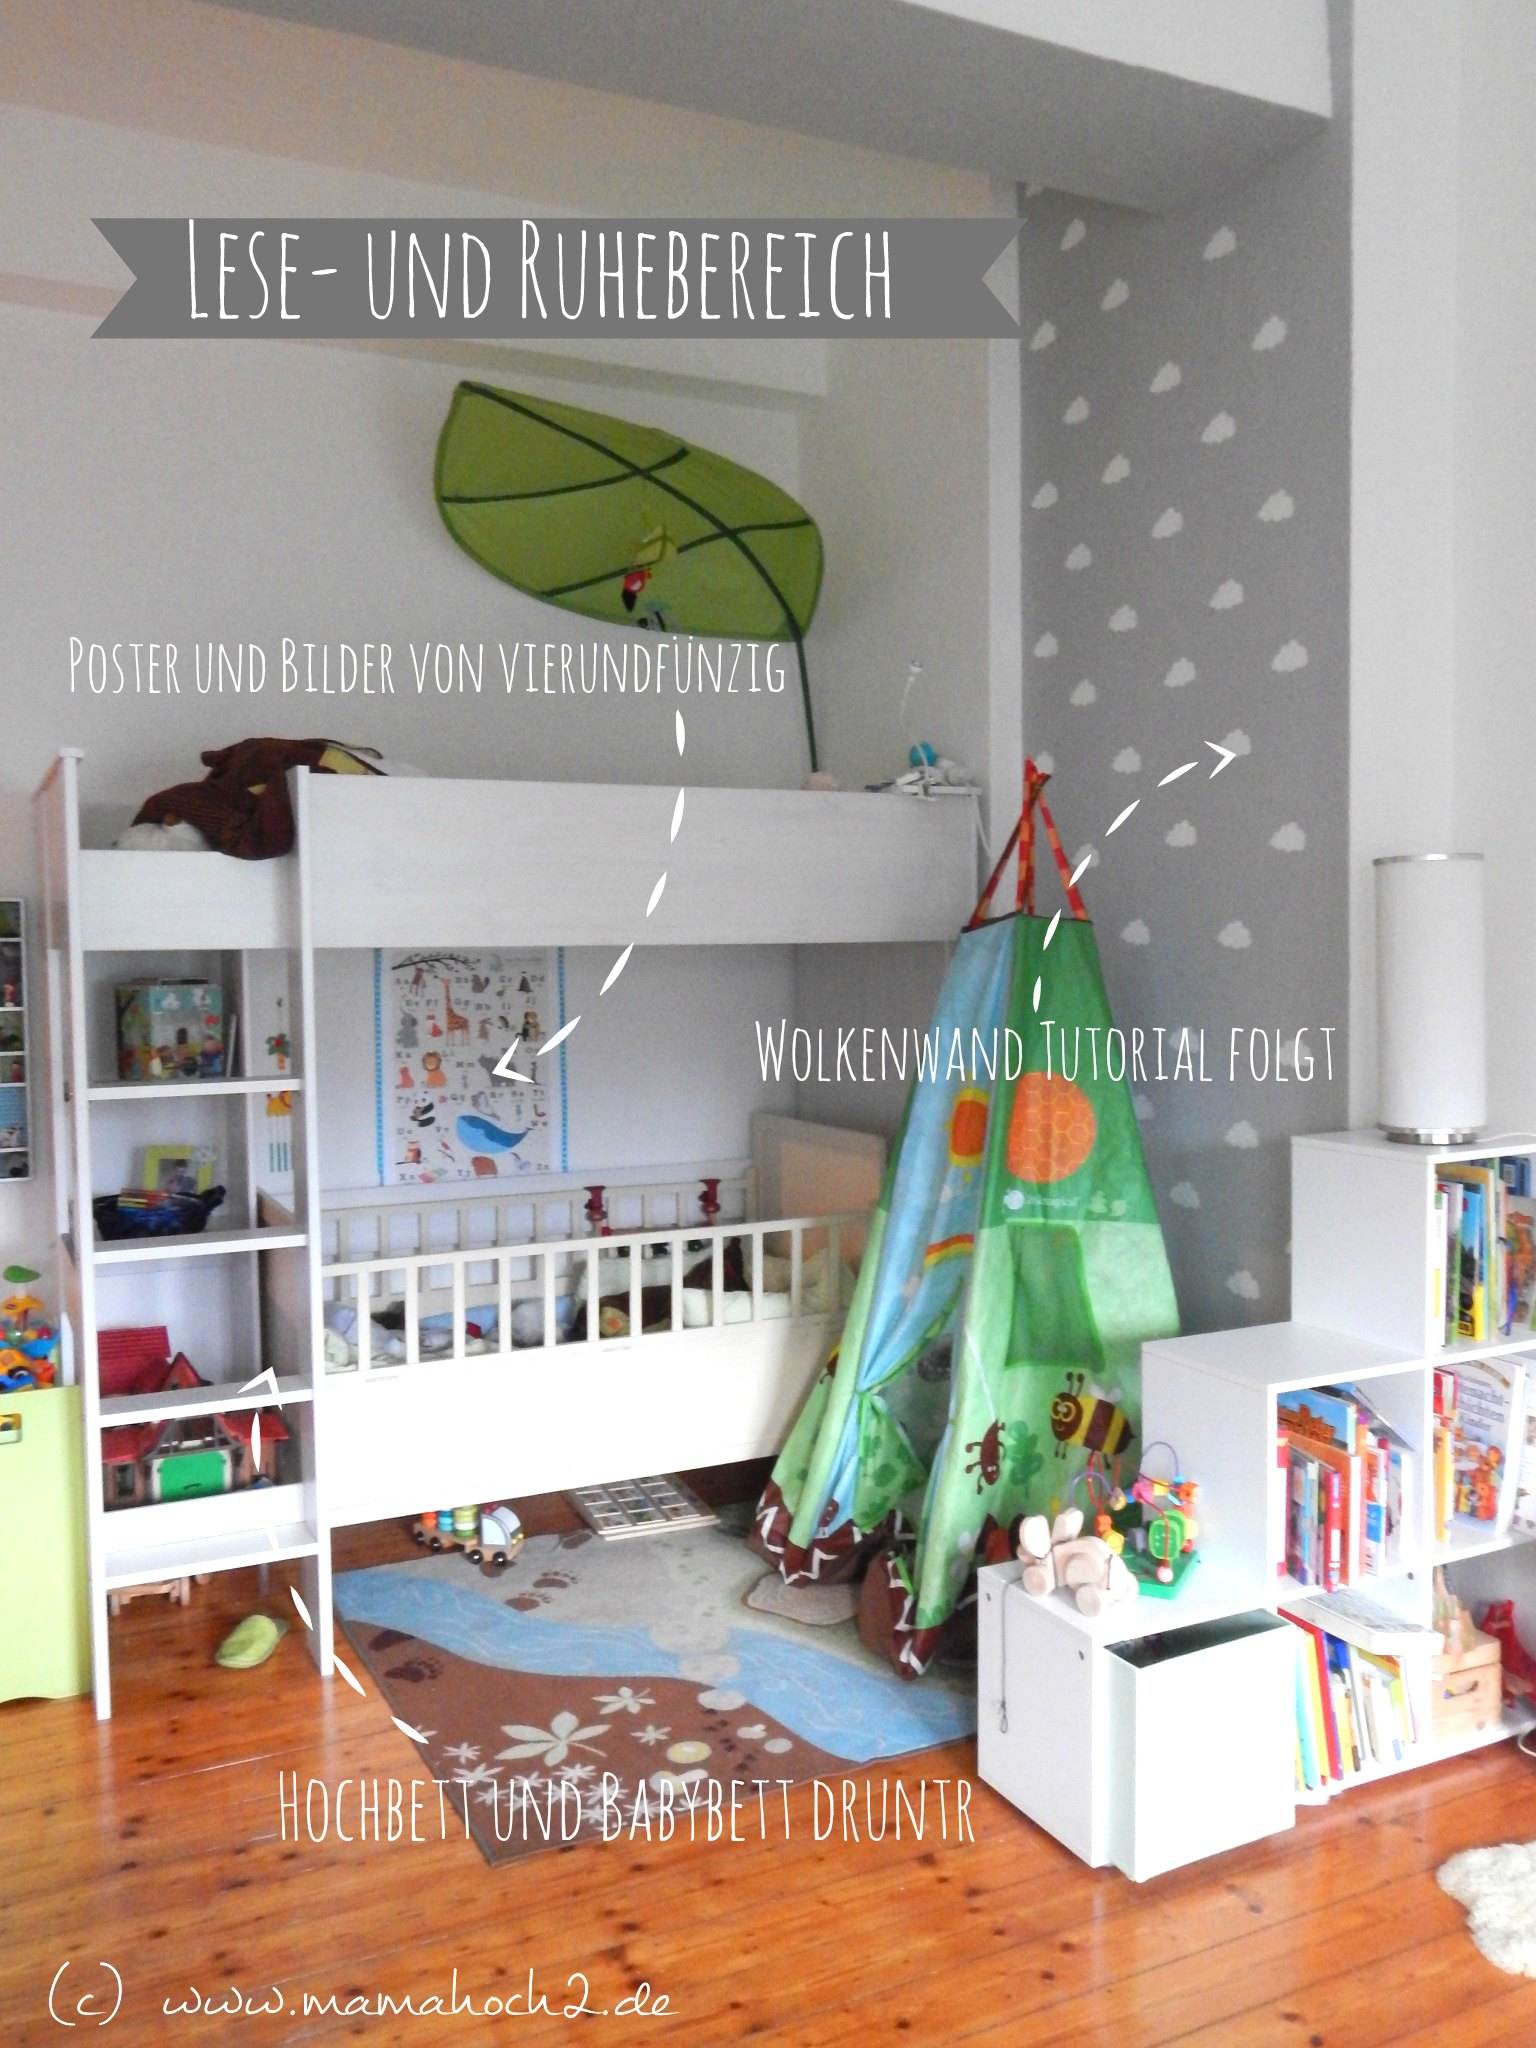 kinderzimmer f r zwei lausebengel kinderzimmerideen mamahoch2. Black Bedroom Furniture Sets. Home Design Ideas